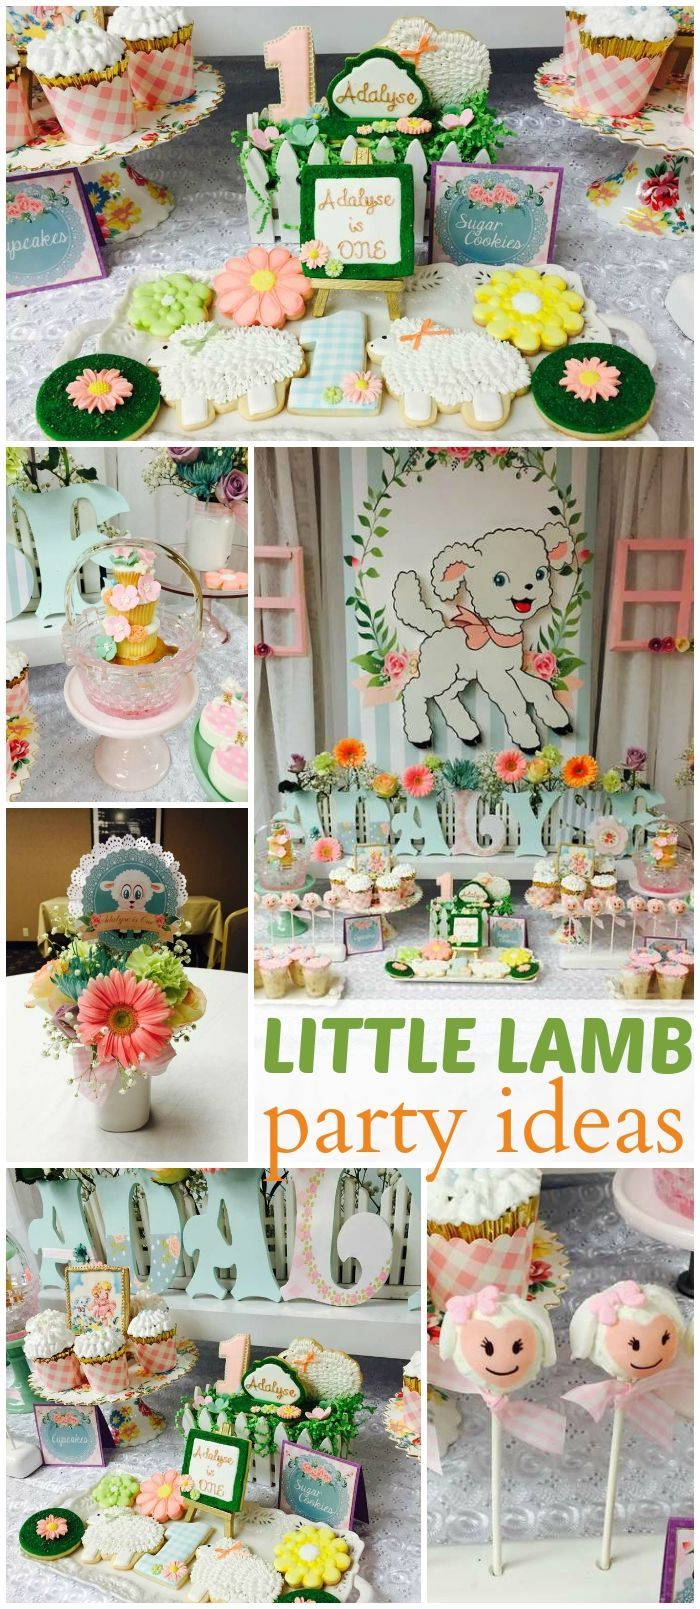 Baby bedding lamb theme sweet pea lamb baby bedding and nursery - How Adorable Is This Mary Had A Little Lamb Party See More Party Ideas